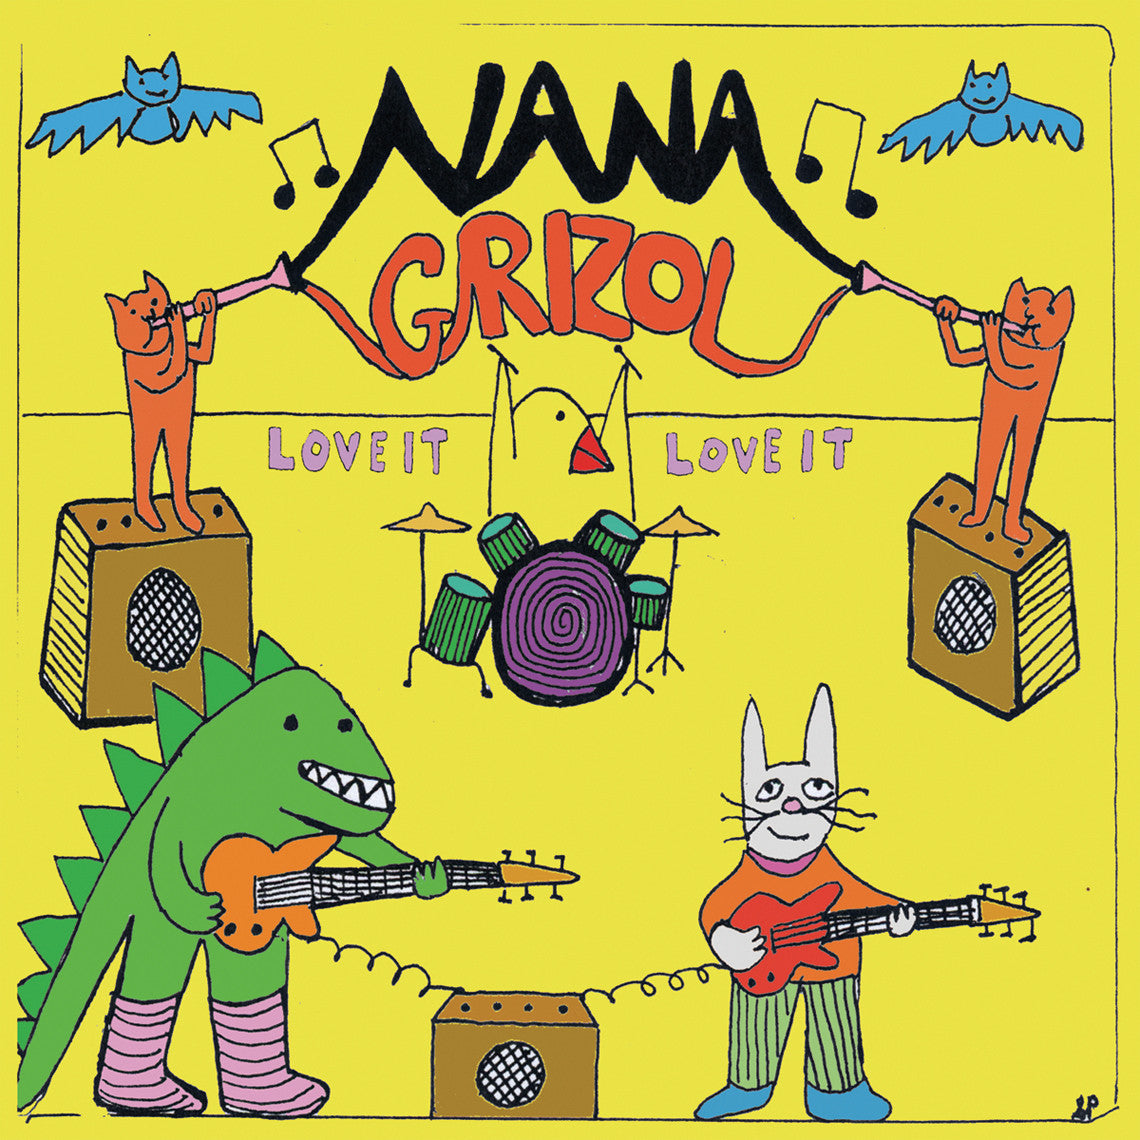 Nana Grizol - Love it, Love it